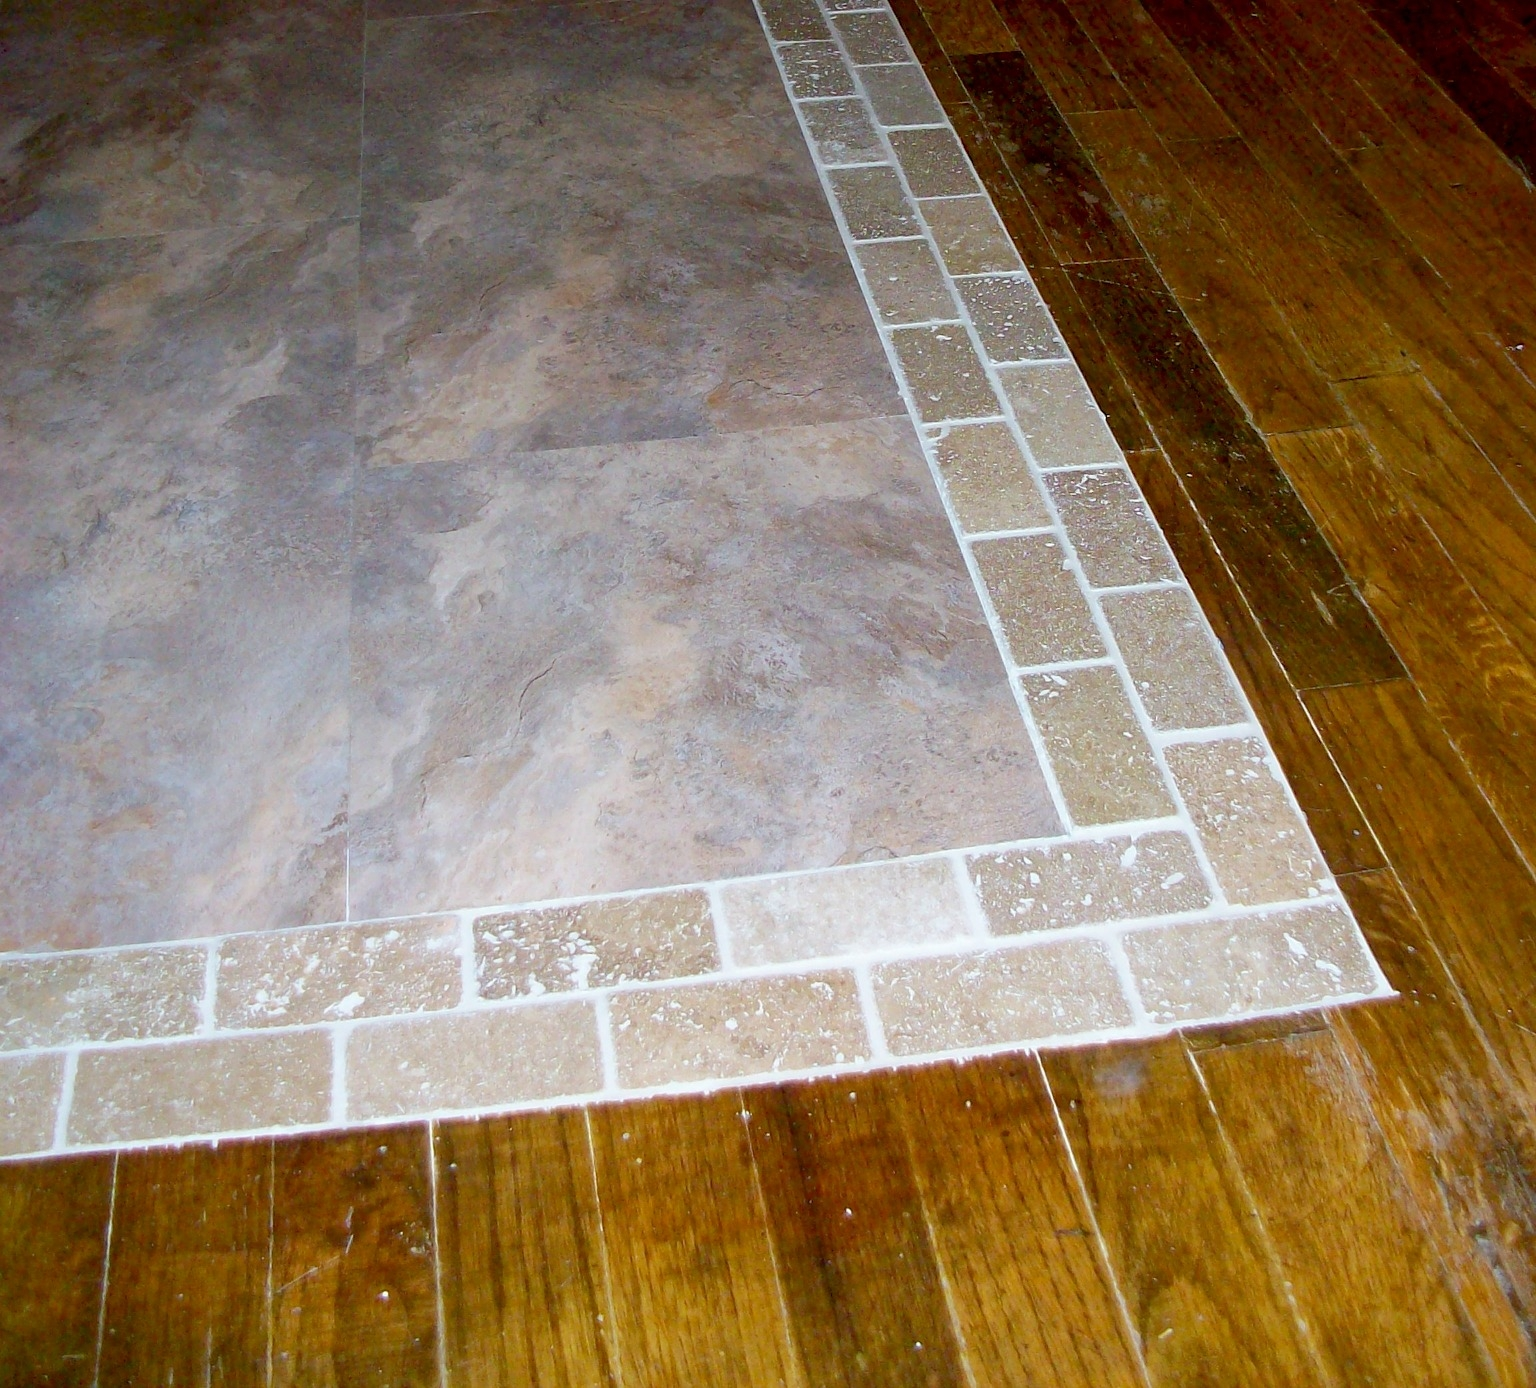 transition between tile and wood floors